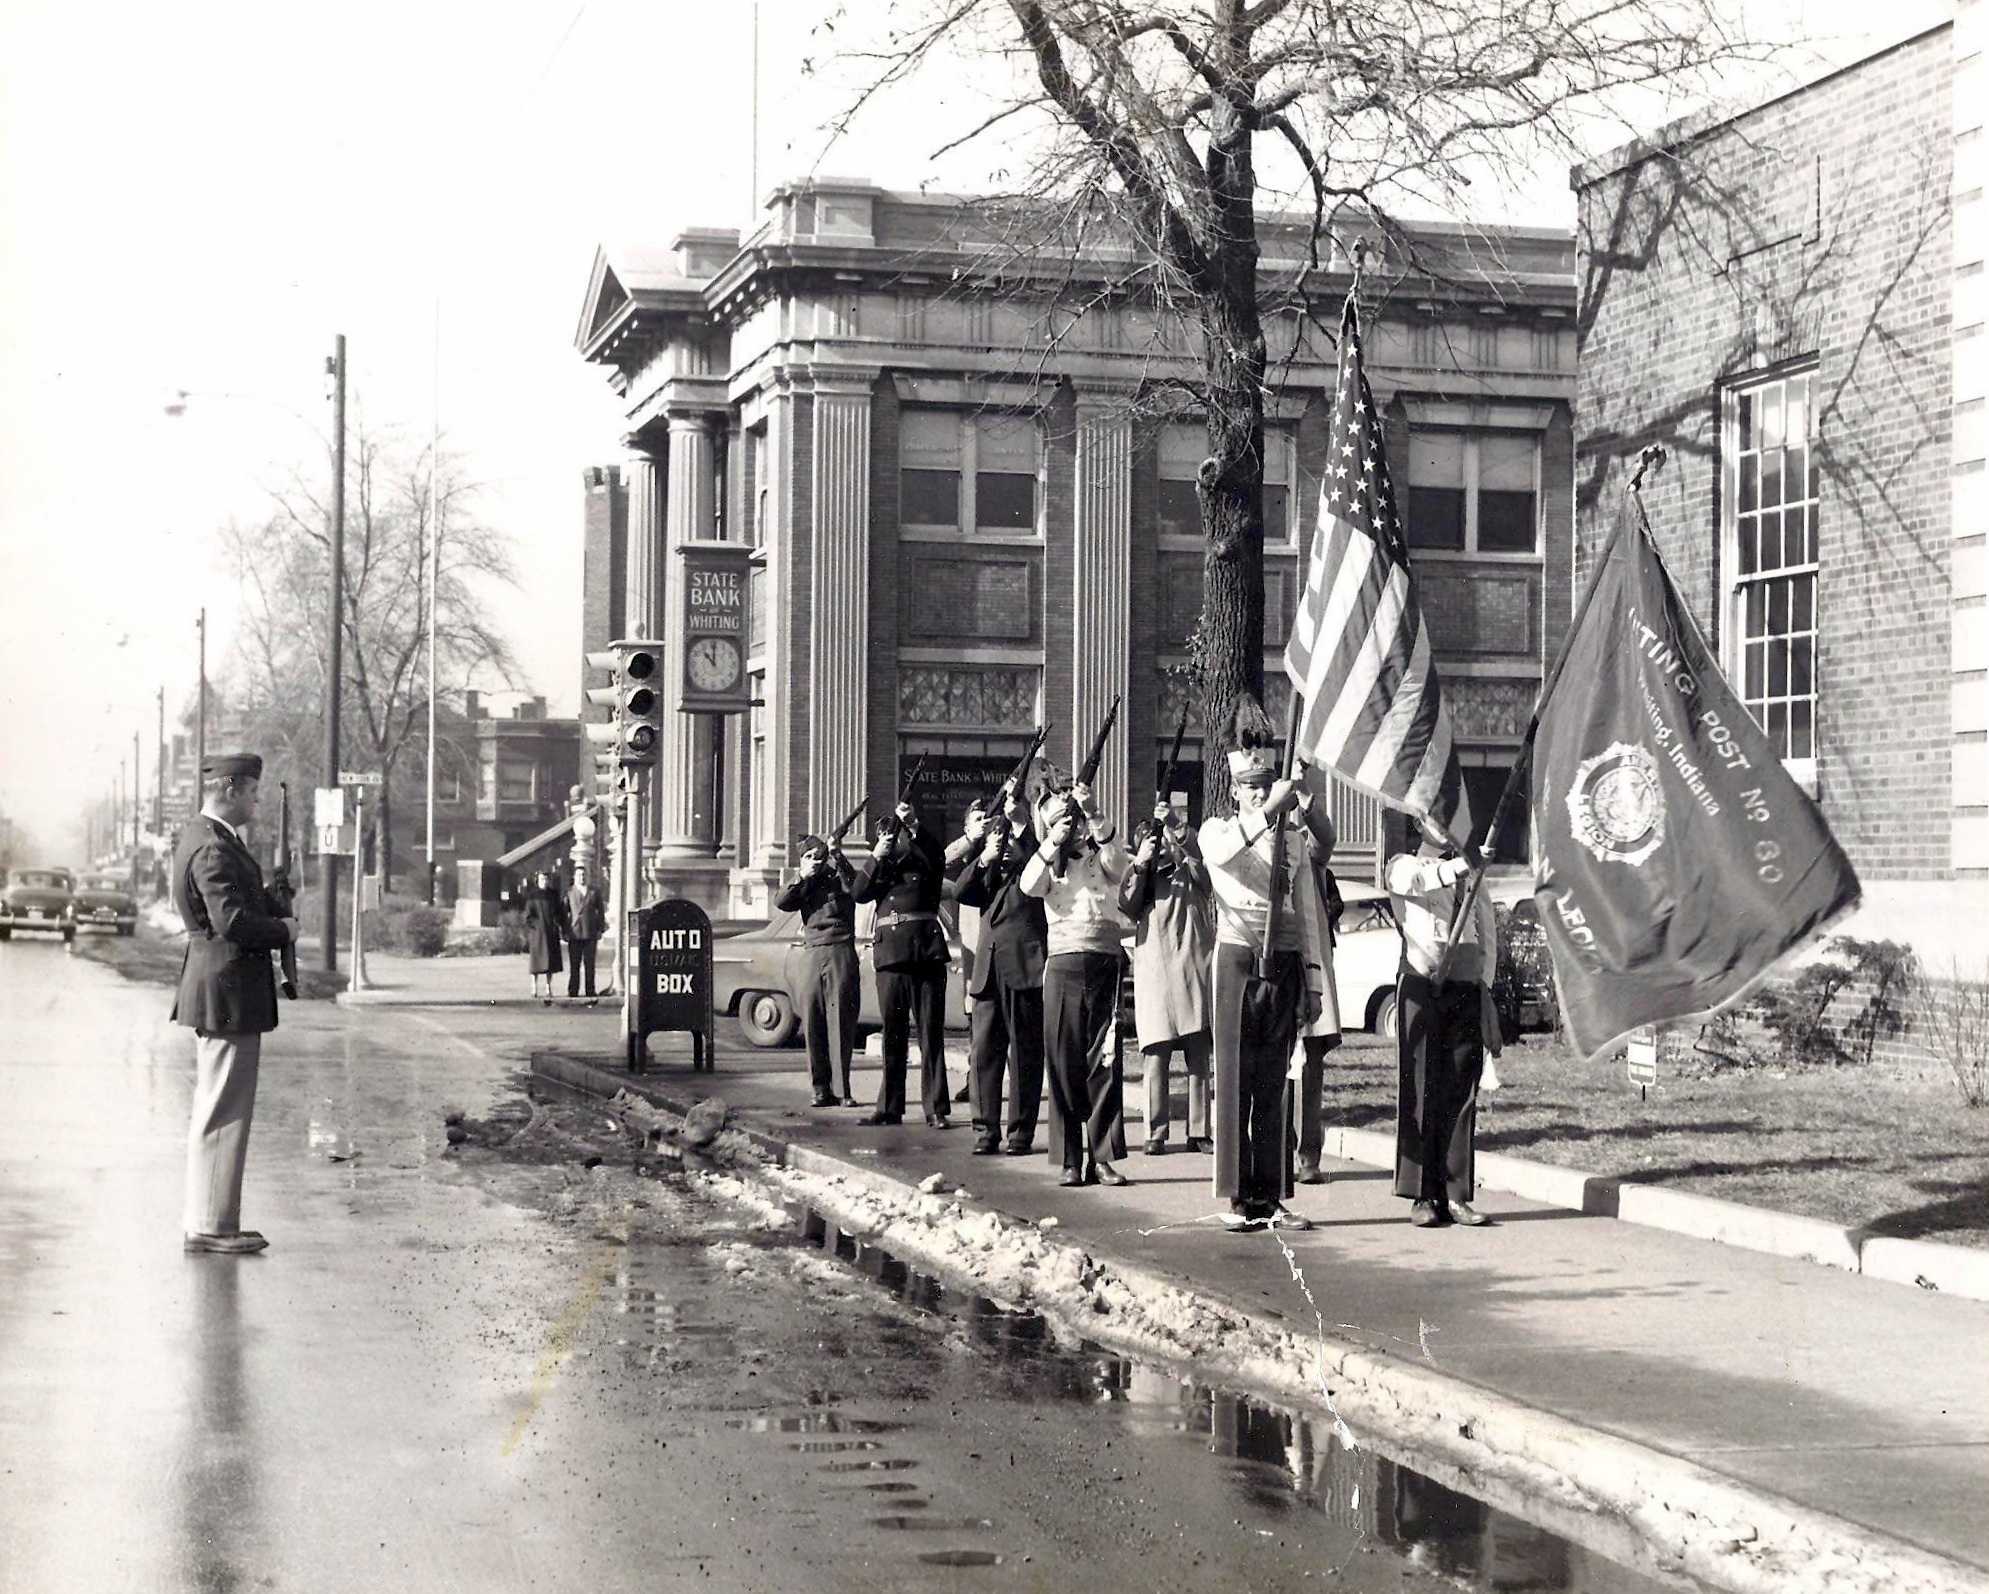 An early 1950s group of American Legion Post 80 members conduct a ceremony in front of the Whiting Post Office, with the State Bank of Whiting in the background. In its prime location at the corner of 119th and New York, the bank building has been the backdrop for numerous ceremonies, parades and other community events over the years.